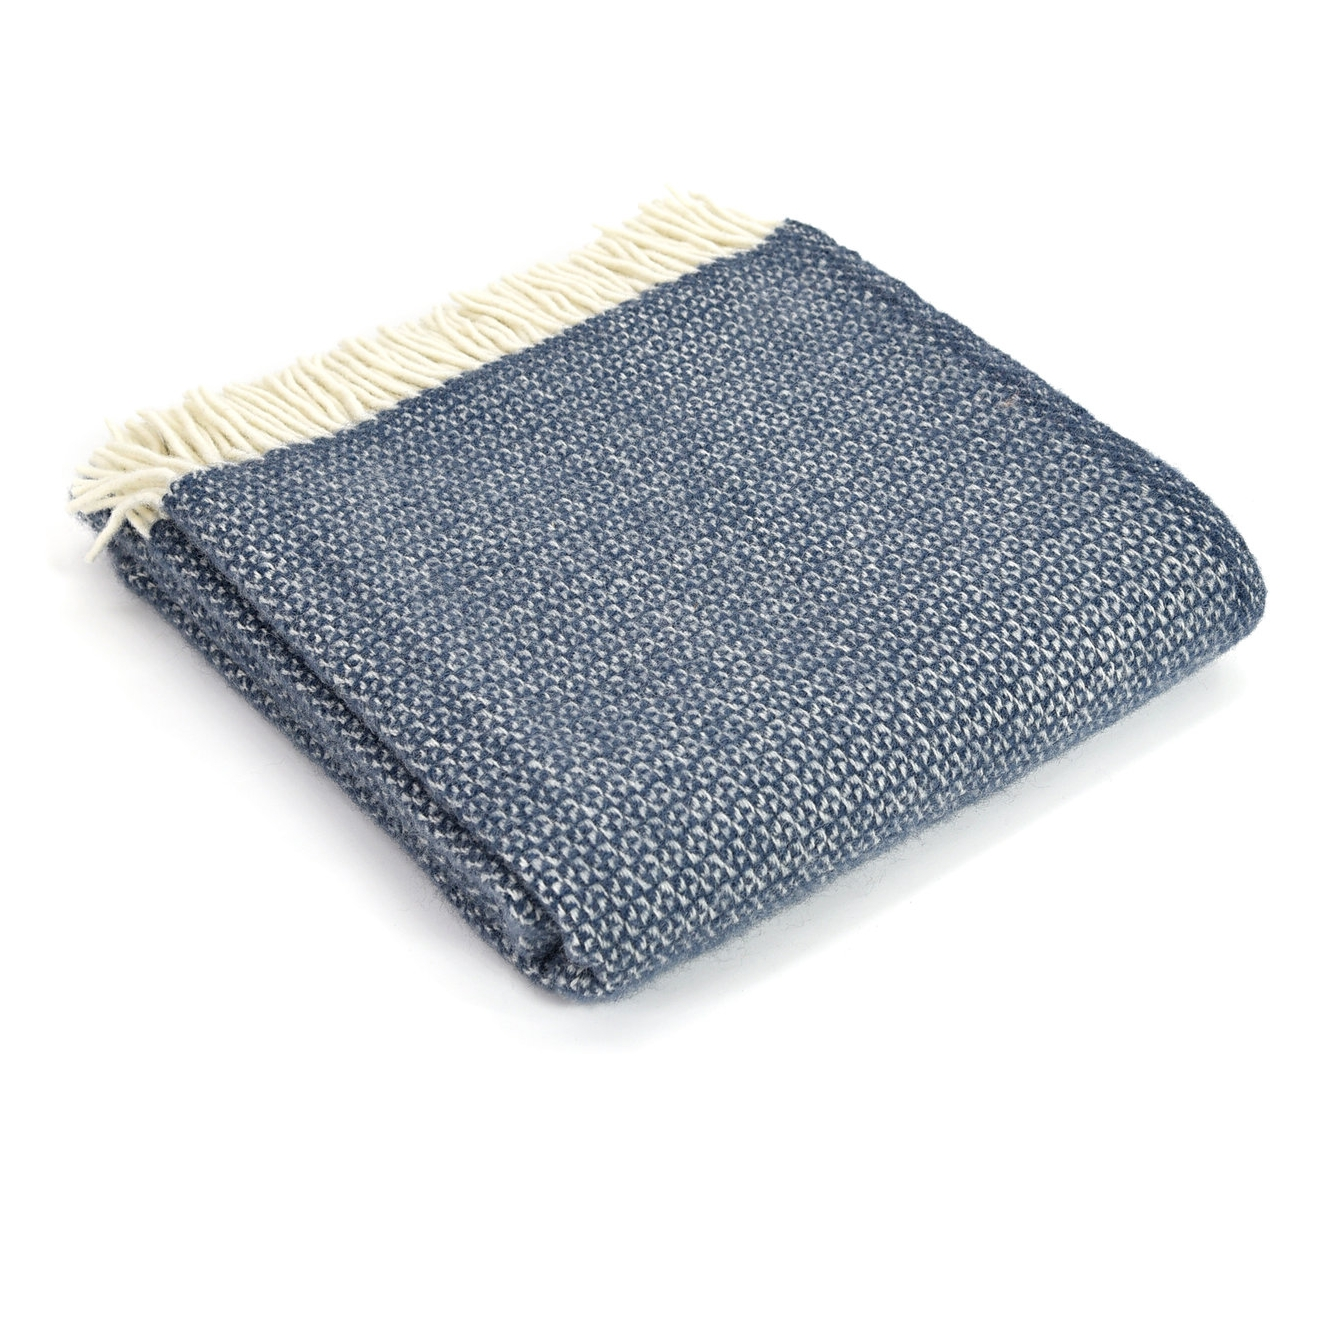 New range of throws - Ankor's new range of sumptuous throws are now in